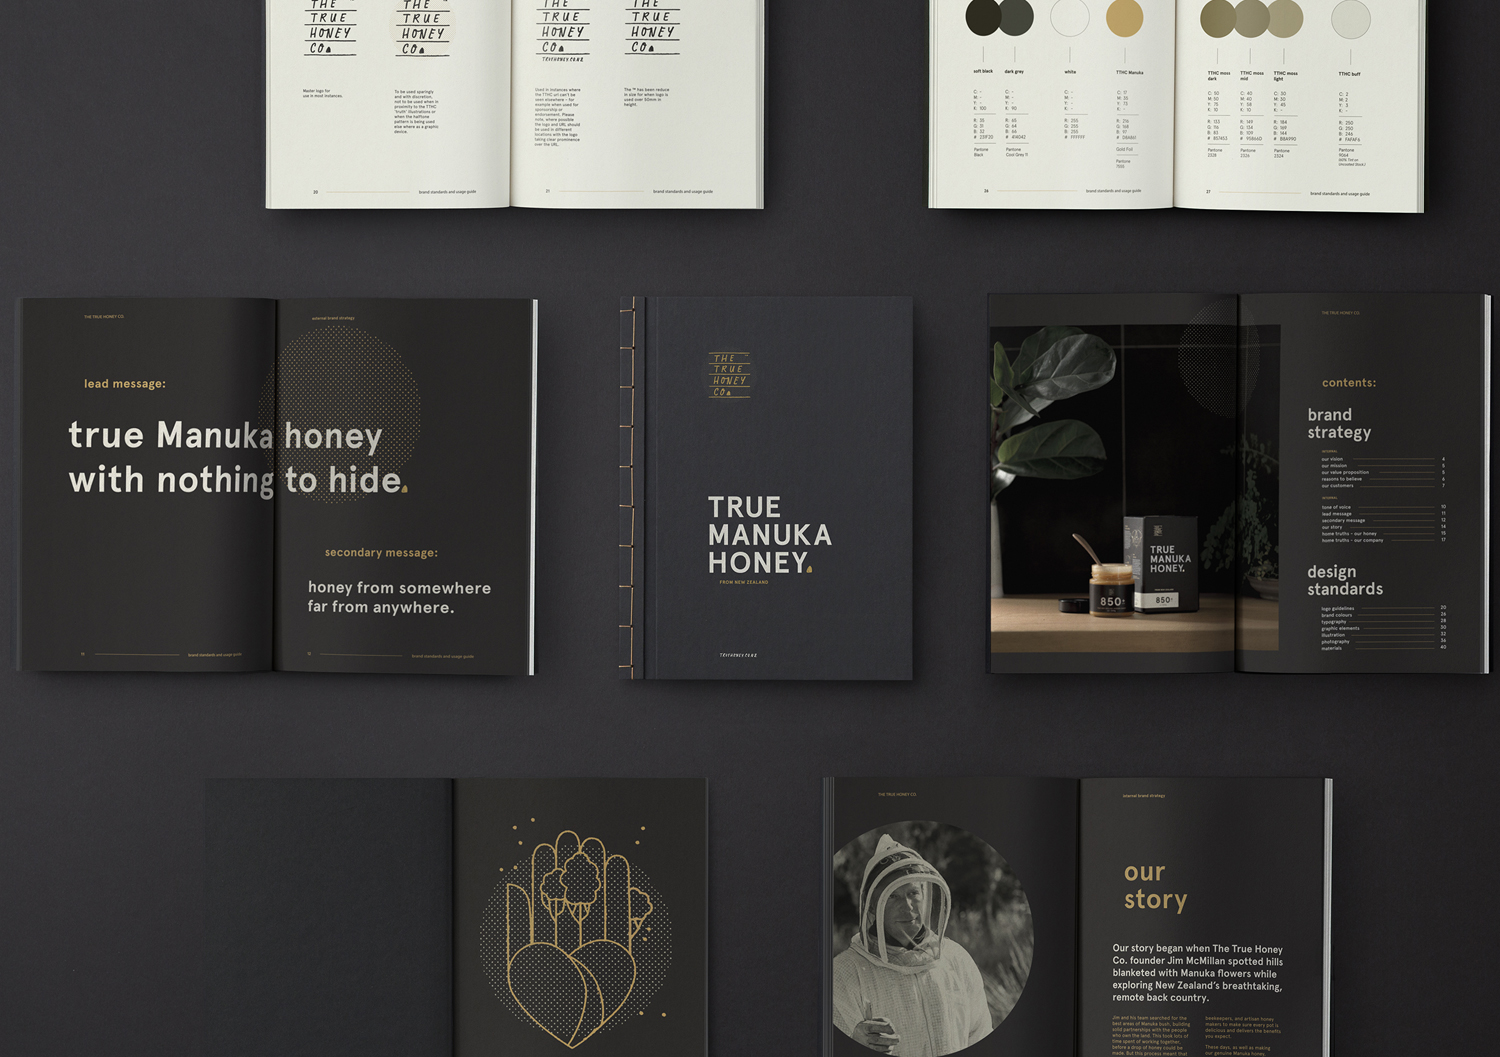 Brand guidelines by Marx Design for The True Honey Company, a New Zealand-based business specialising in mānuka honey